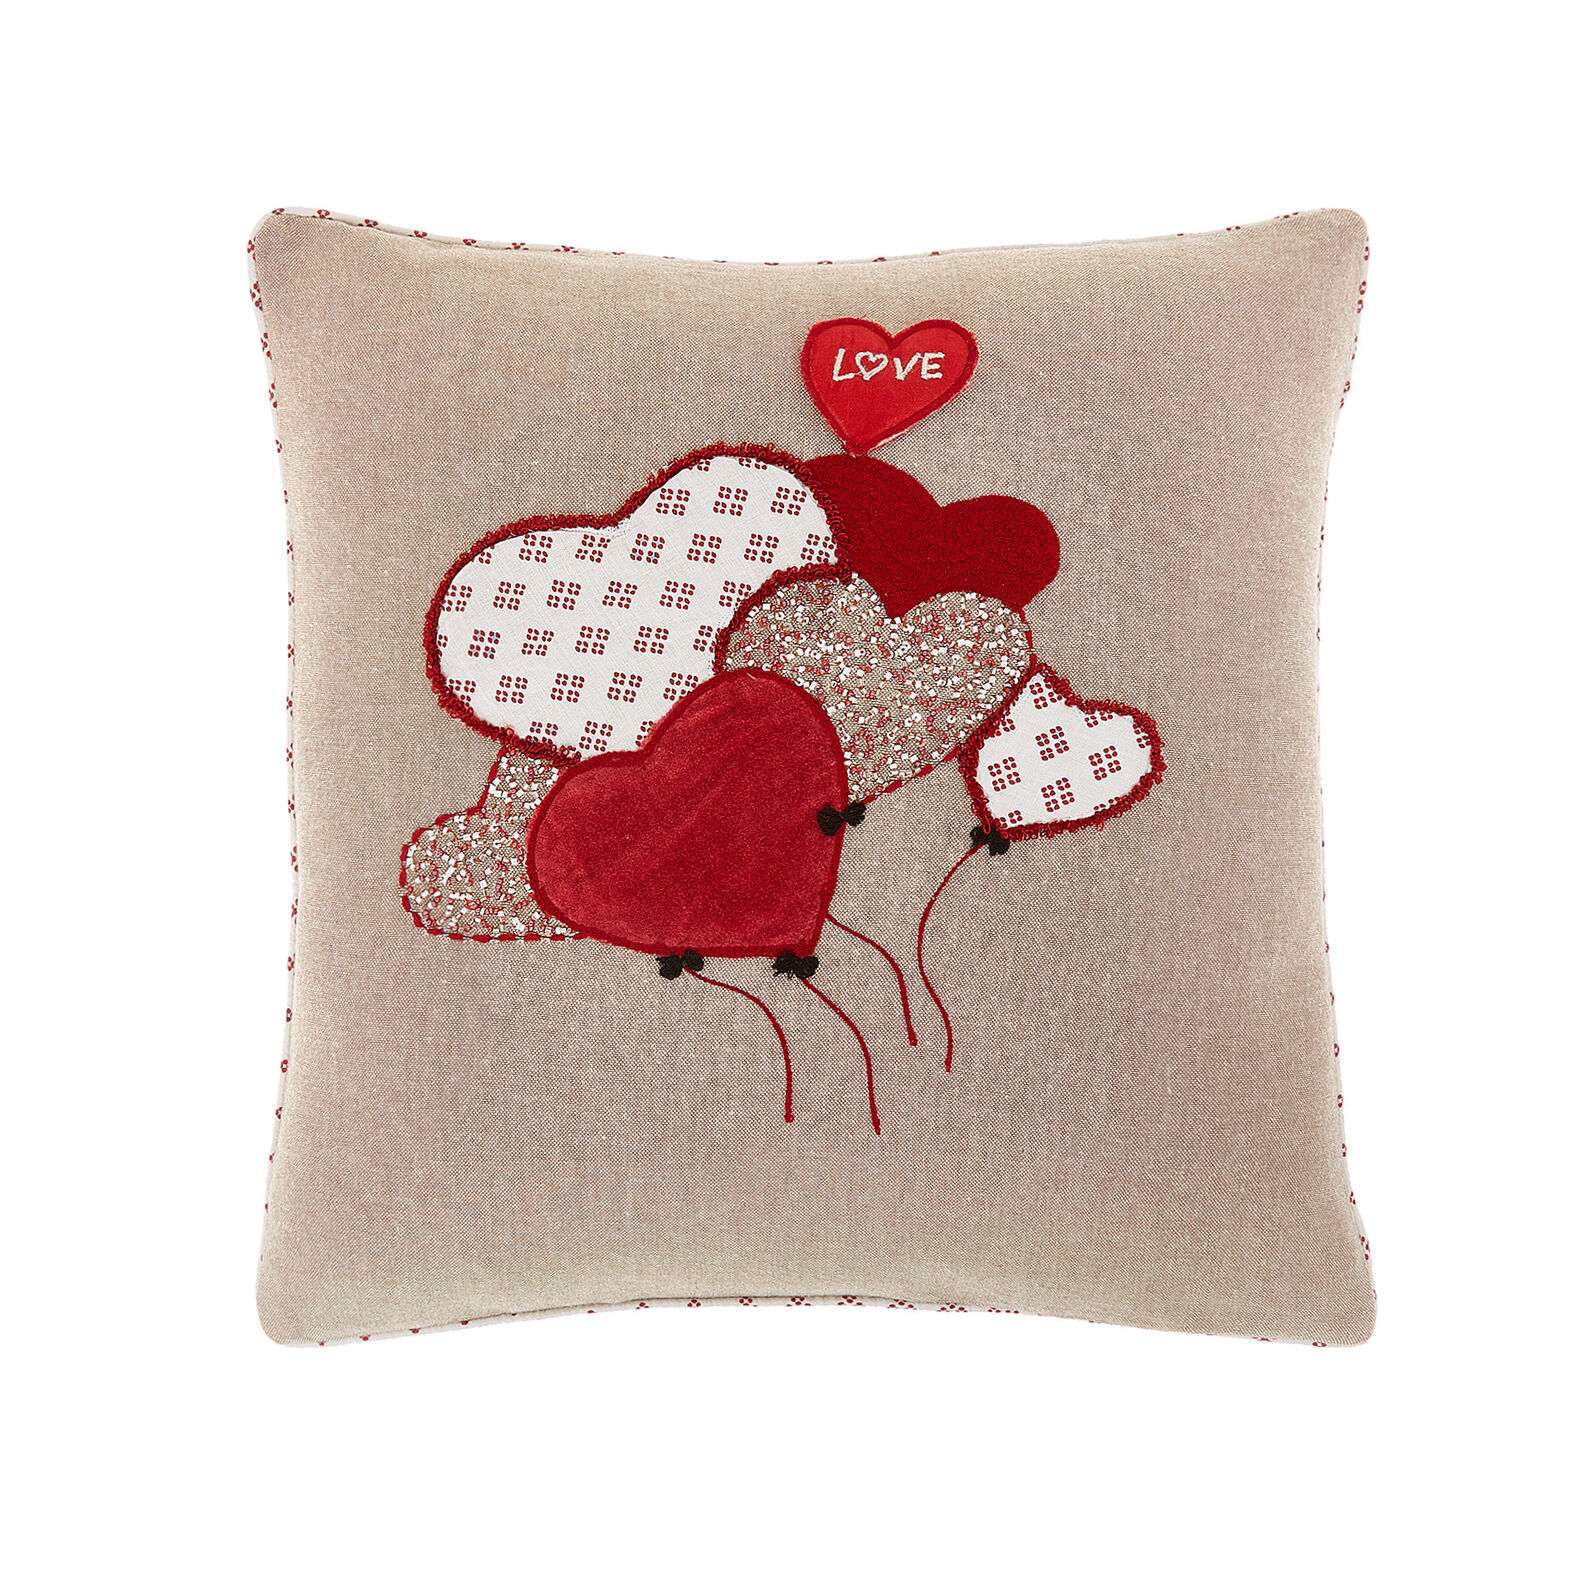 Cushion with applications and embroidery 45x45cm